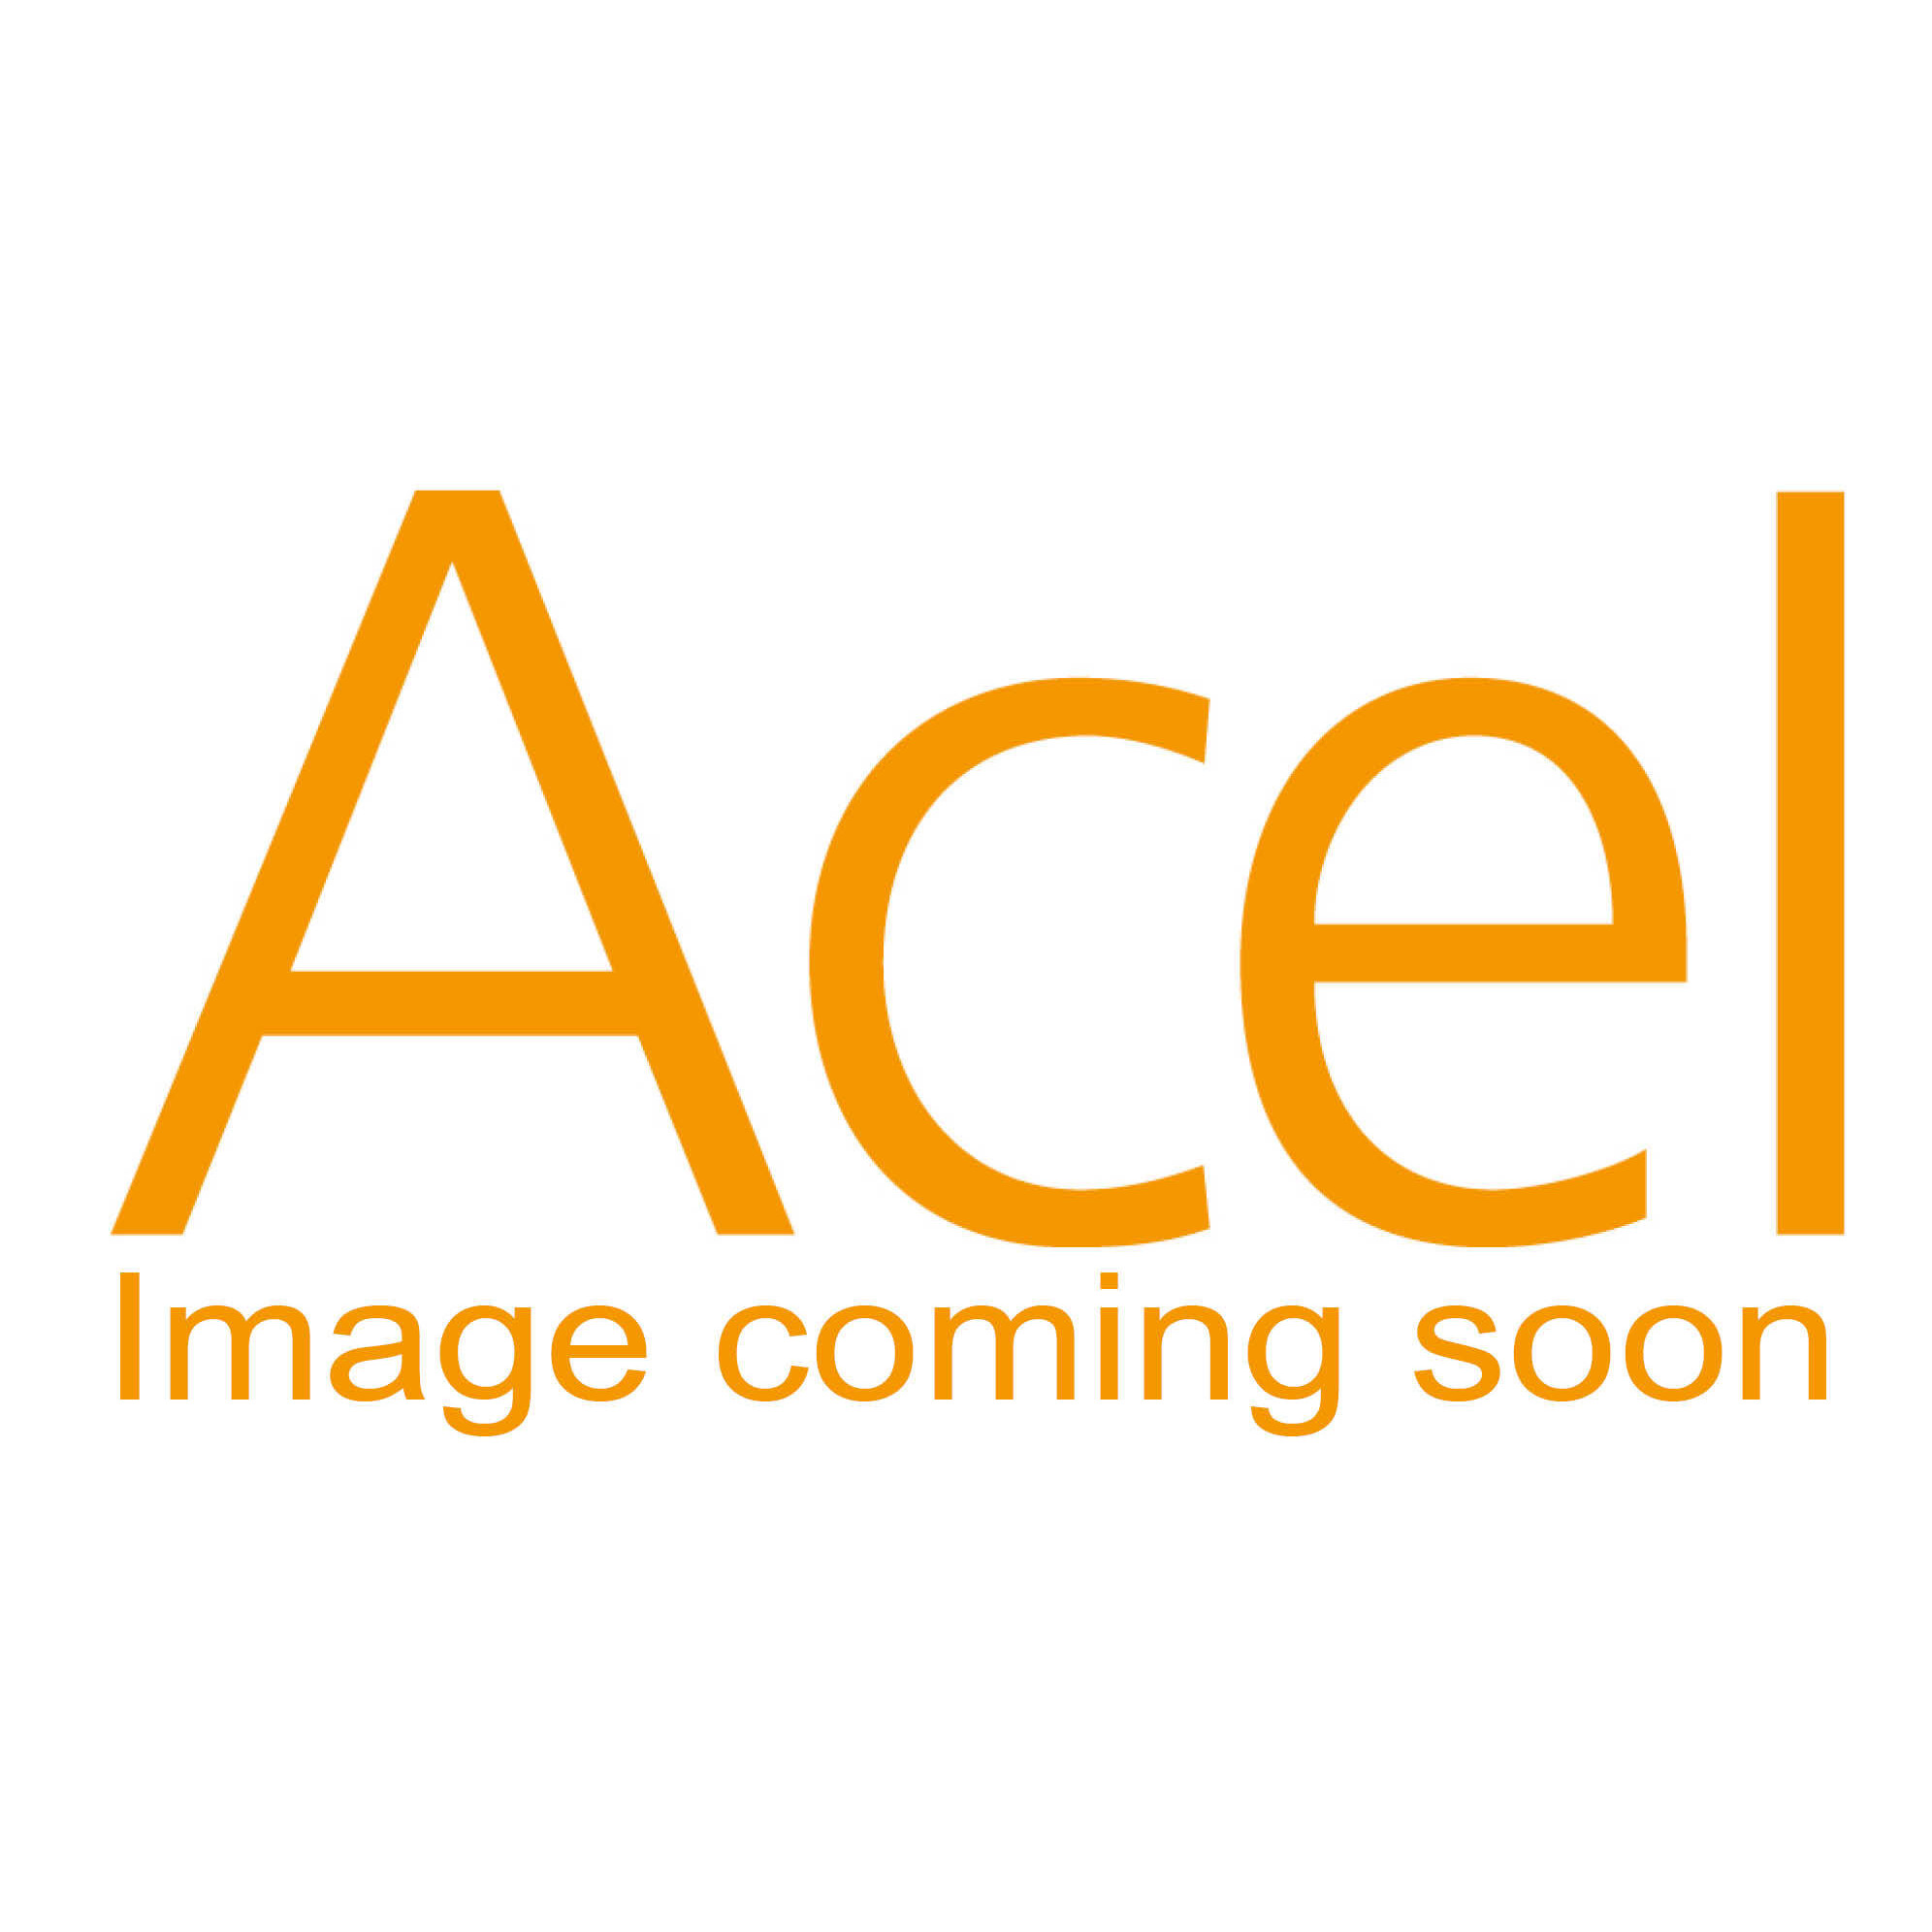 Self Adhesive Vinyl Test and Inspection Labels - Pass test labels large 42.5 x 32.5mm Pk250